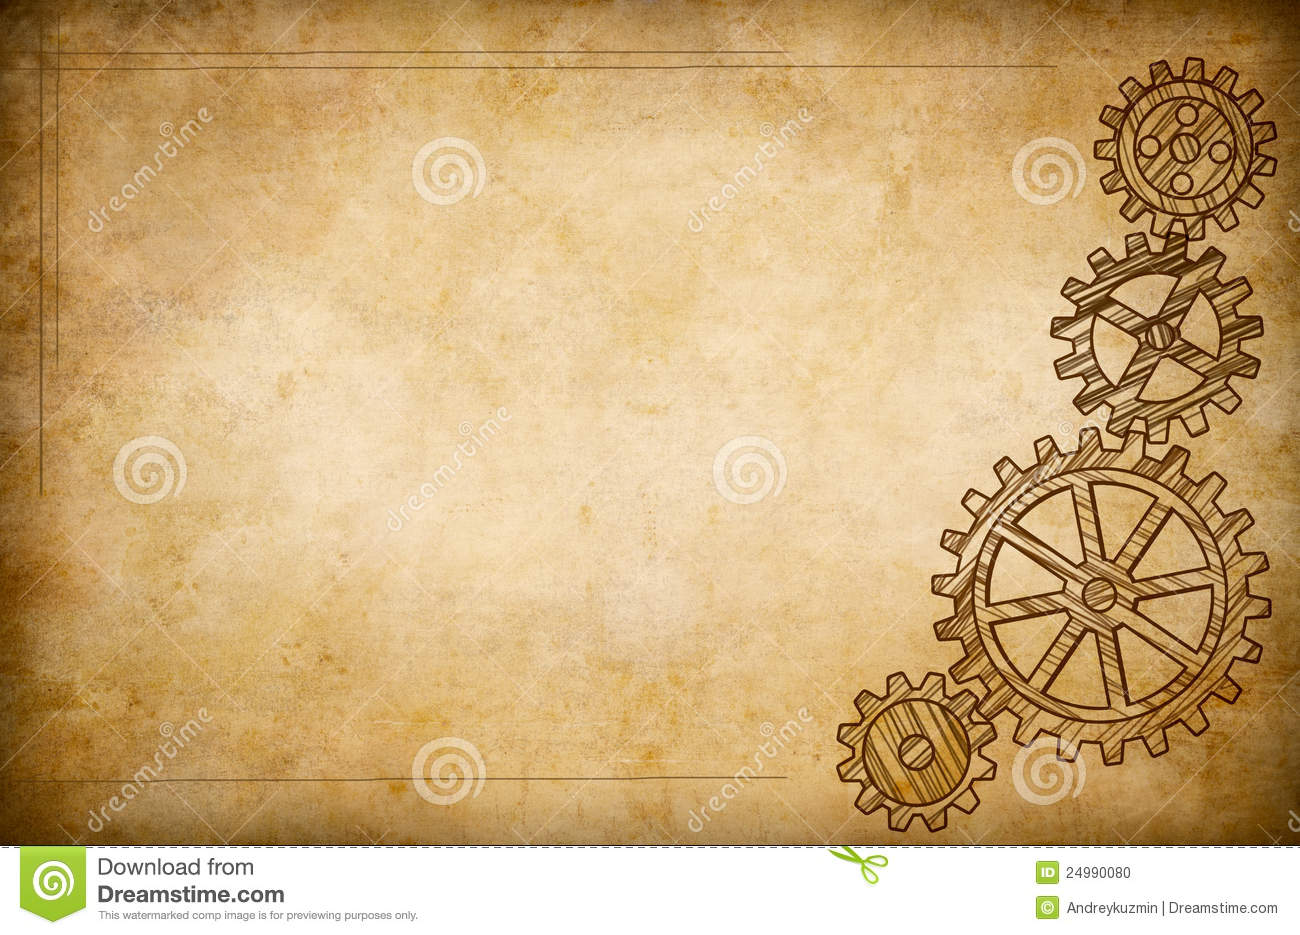 Grunge Gears And Cogs Drawing Background Stock Photo ...